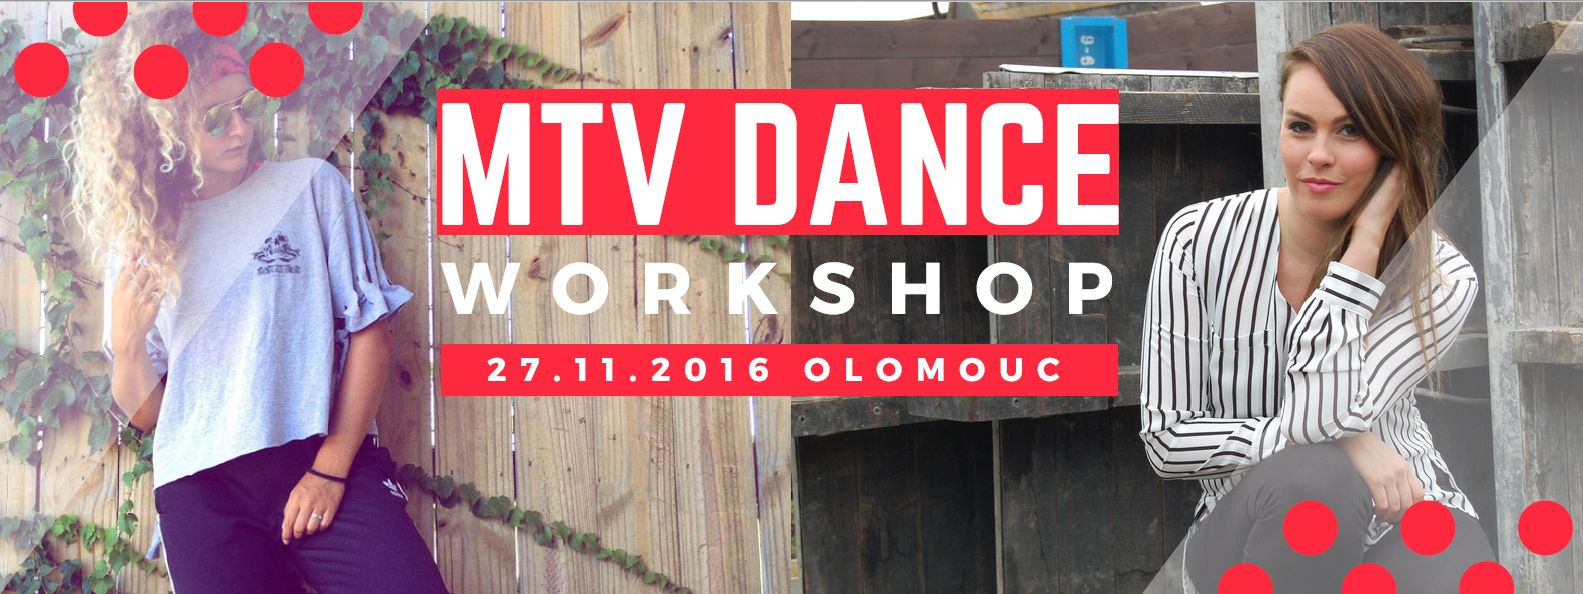 MTV Dance Workshop | 27.11.2016 v 331 Dance Studiu Olomouc